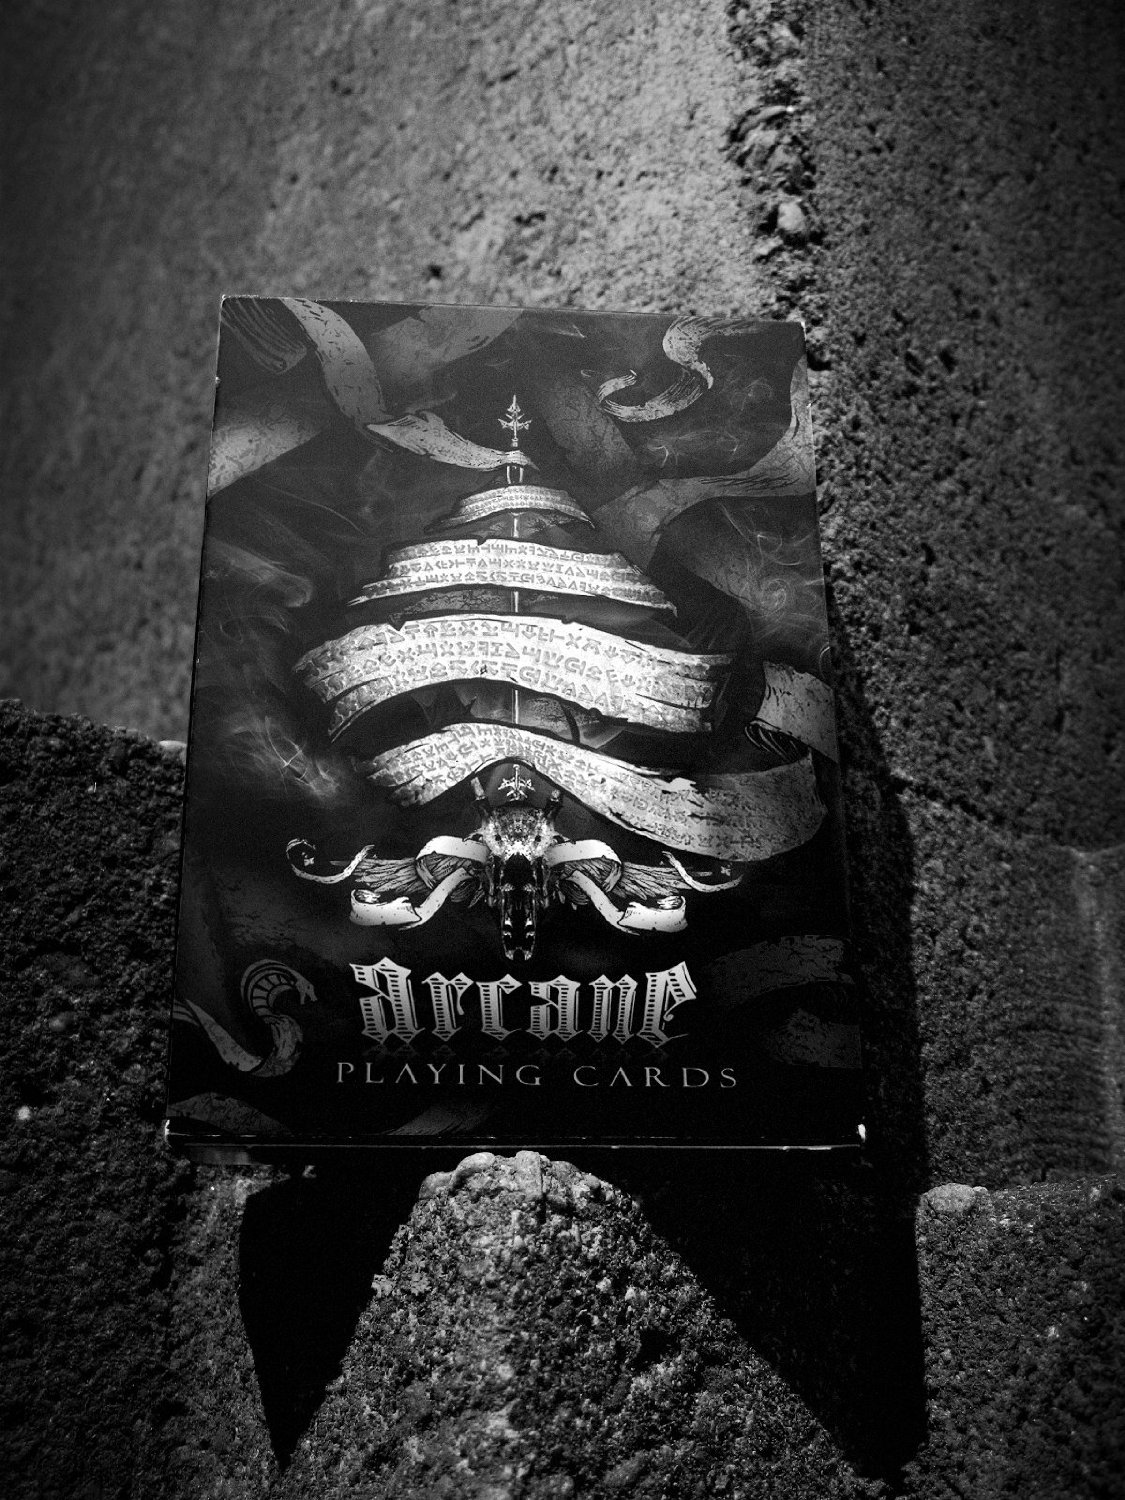 Arcane Playing Cards (Black Deck) by Ellusionist ellusionist playing cards, magic cards, collectible cards